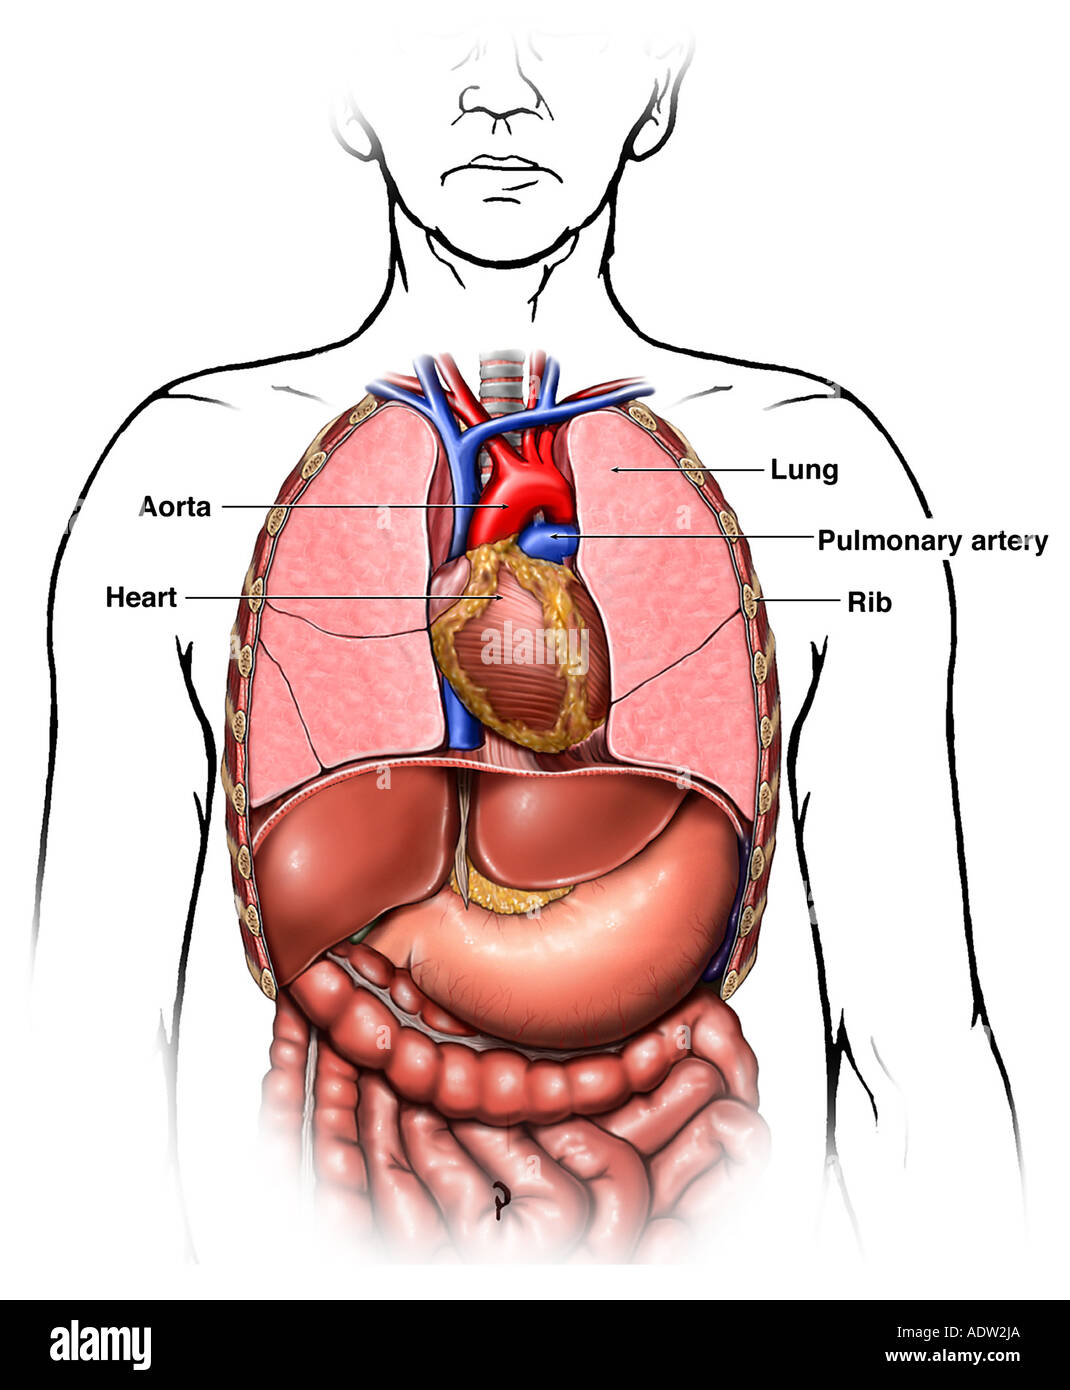 Anatomy of the Thoracic (Chest) Organs Stock Photo: 7711401 - Alamy